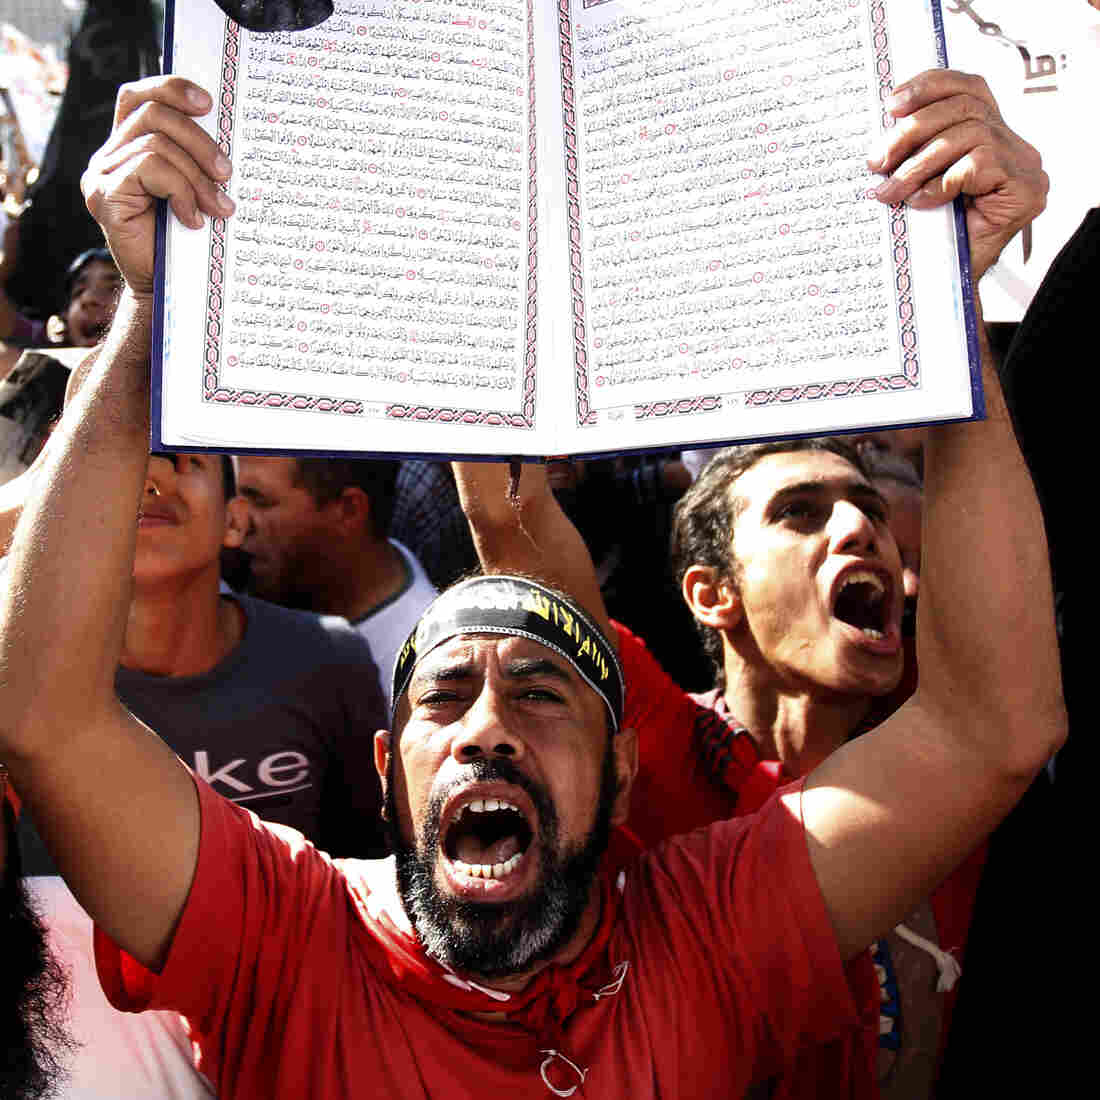 Egypt's Salafis Emerge As Powerful And Controversial Political Force